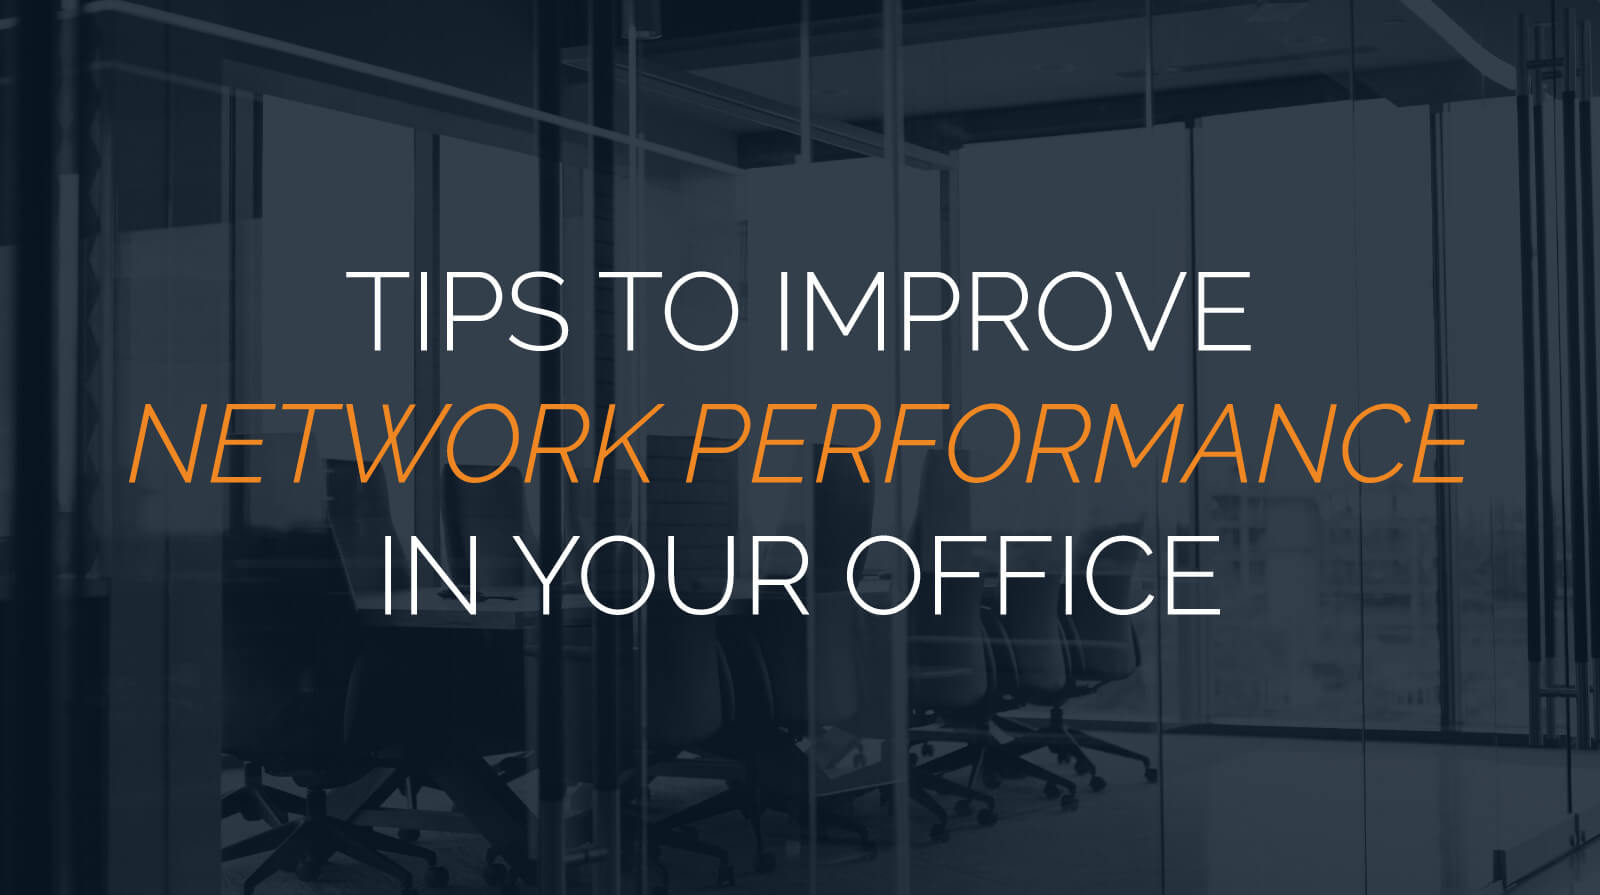 8 Tips to Improve Network Performance in Your Office